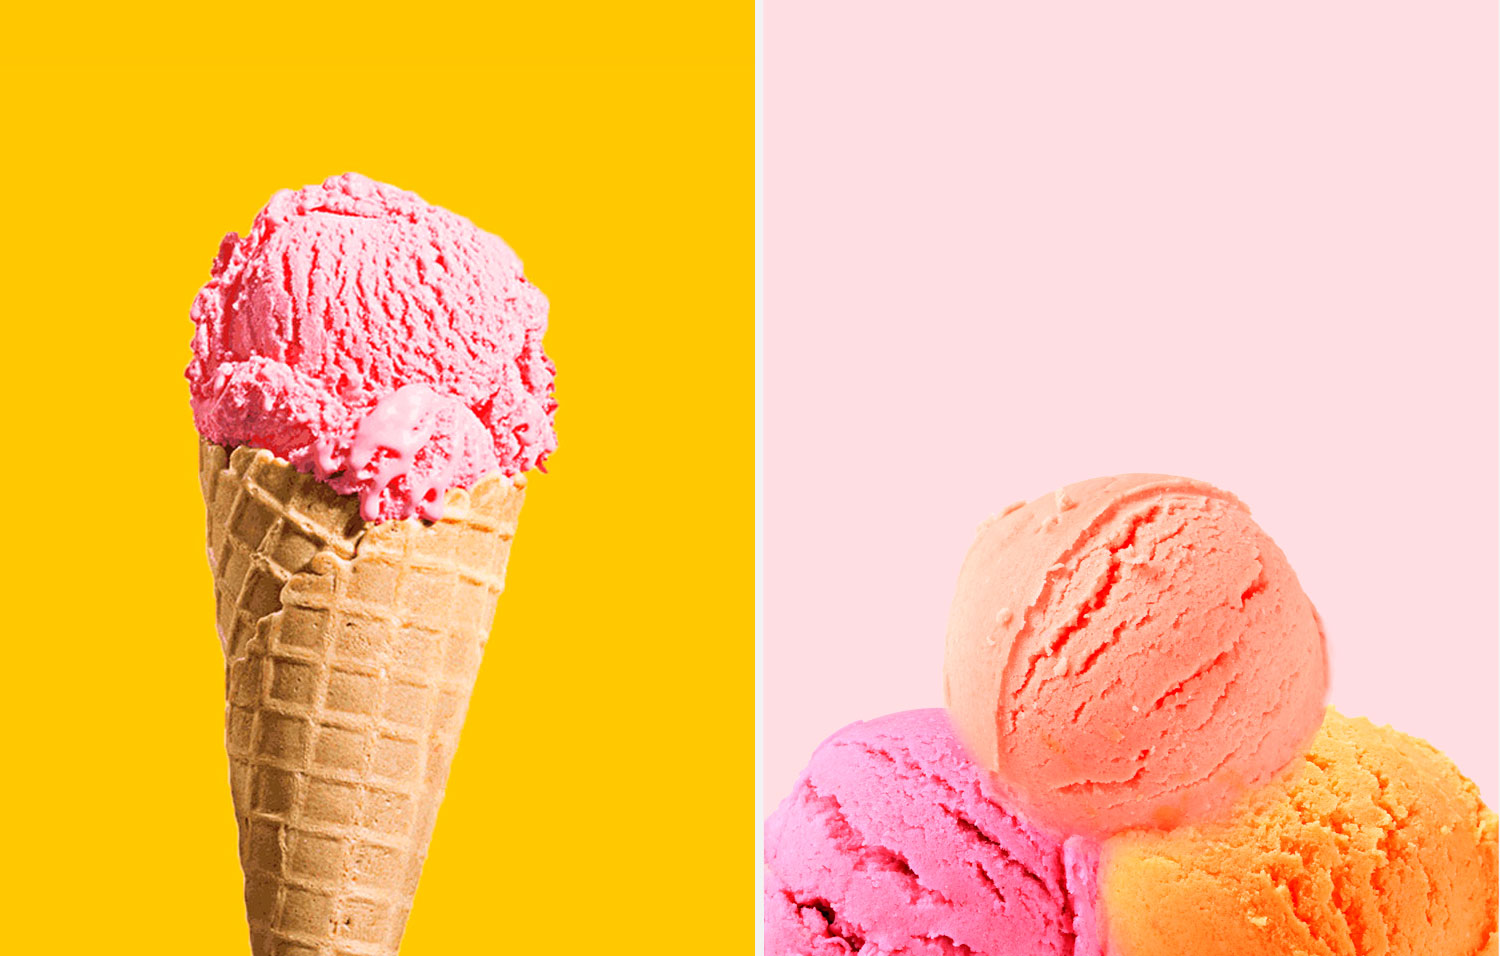 Which is better for you: Half cup of ice cream or 3 scoops of sorbet?